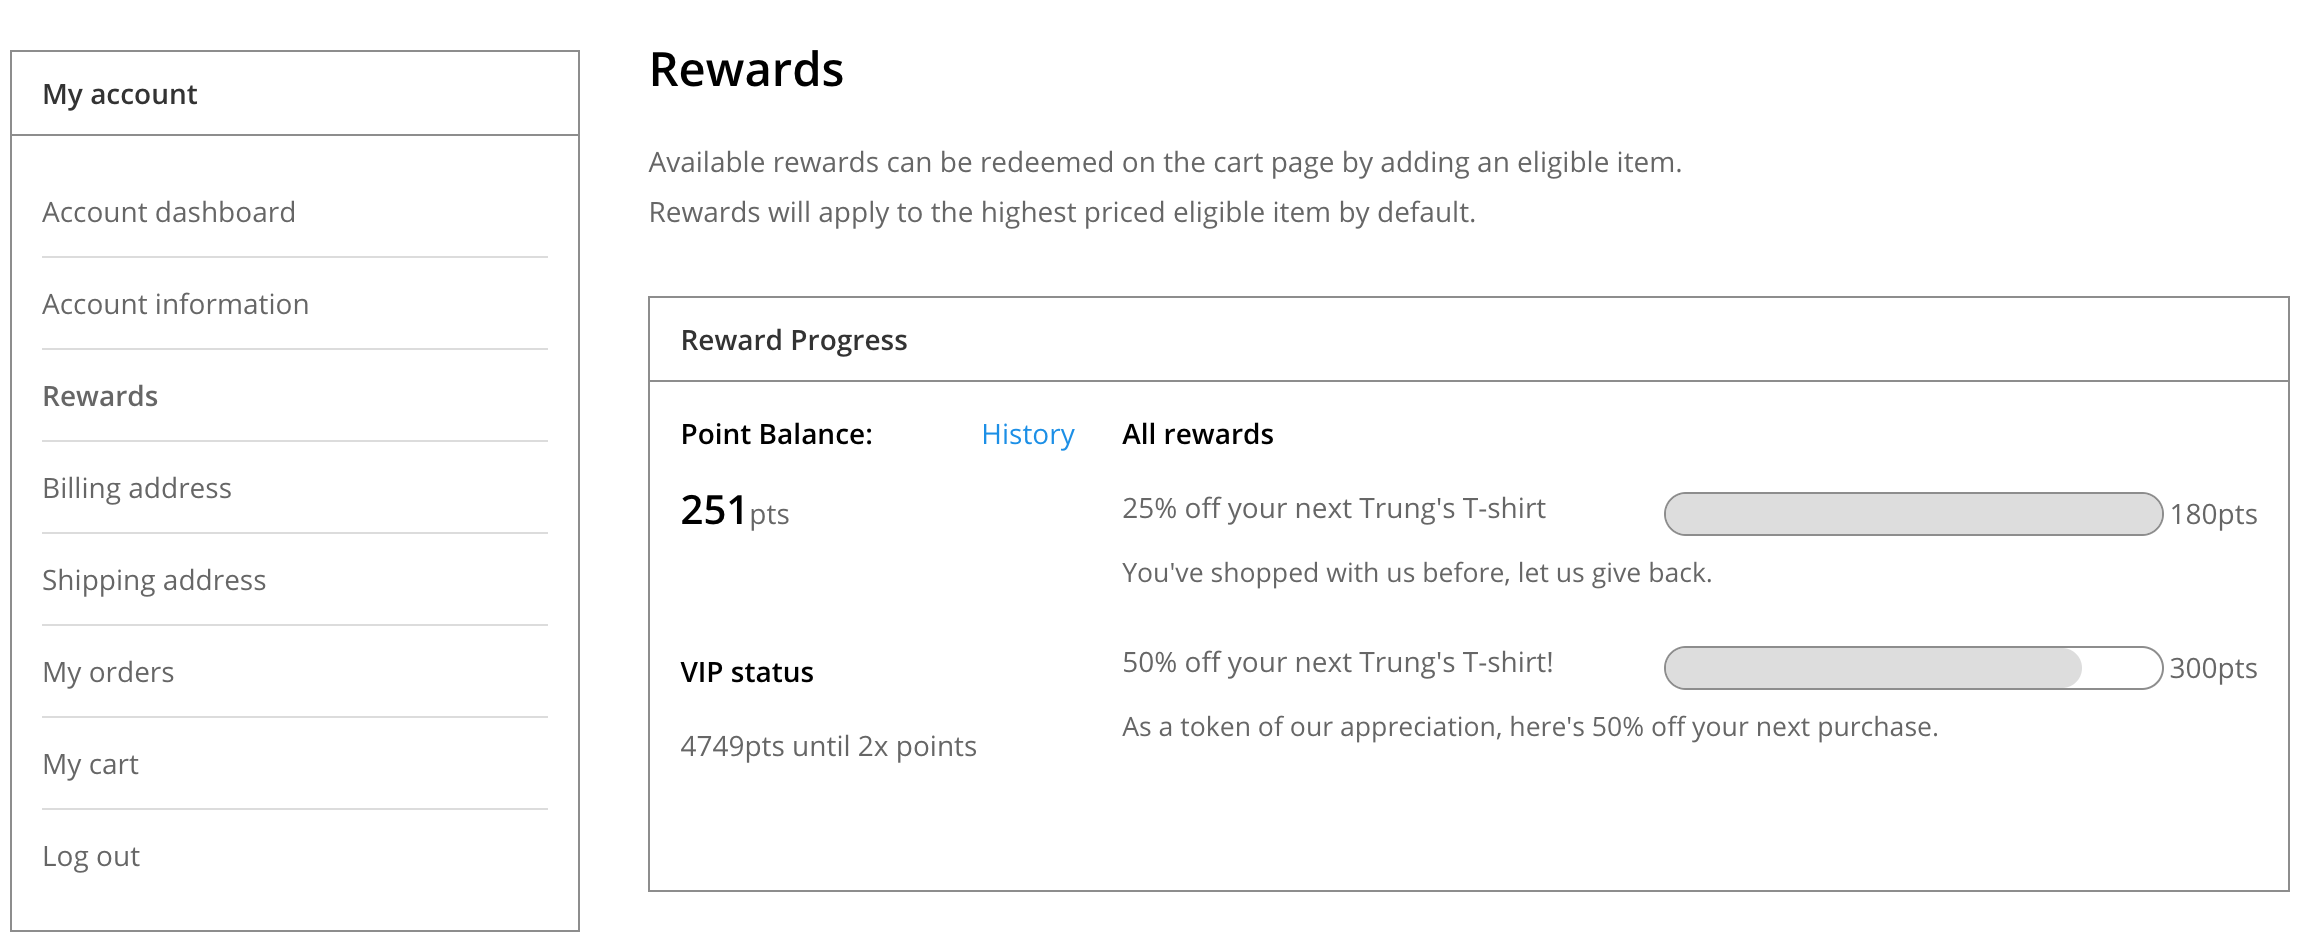 Shows the rewards page from the customer account screen. The customer has earned one reward and has almost earned a second one.